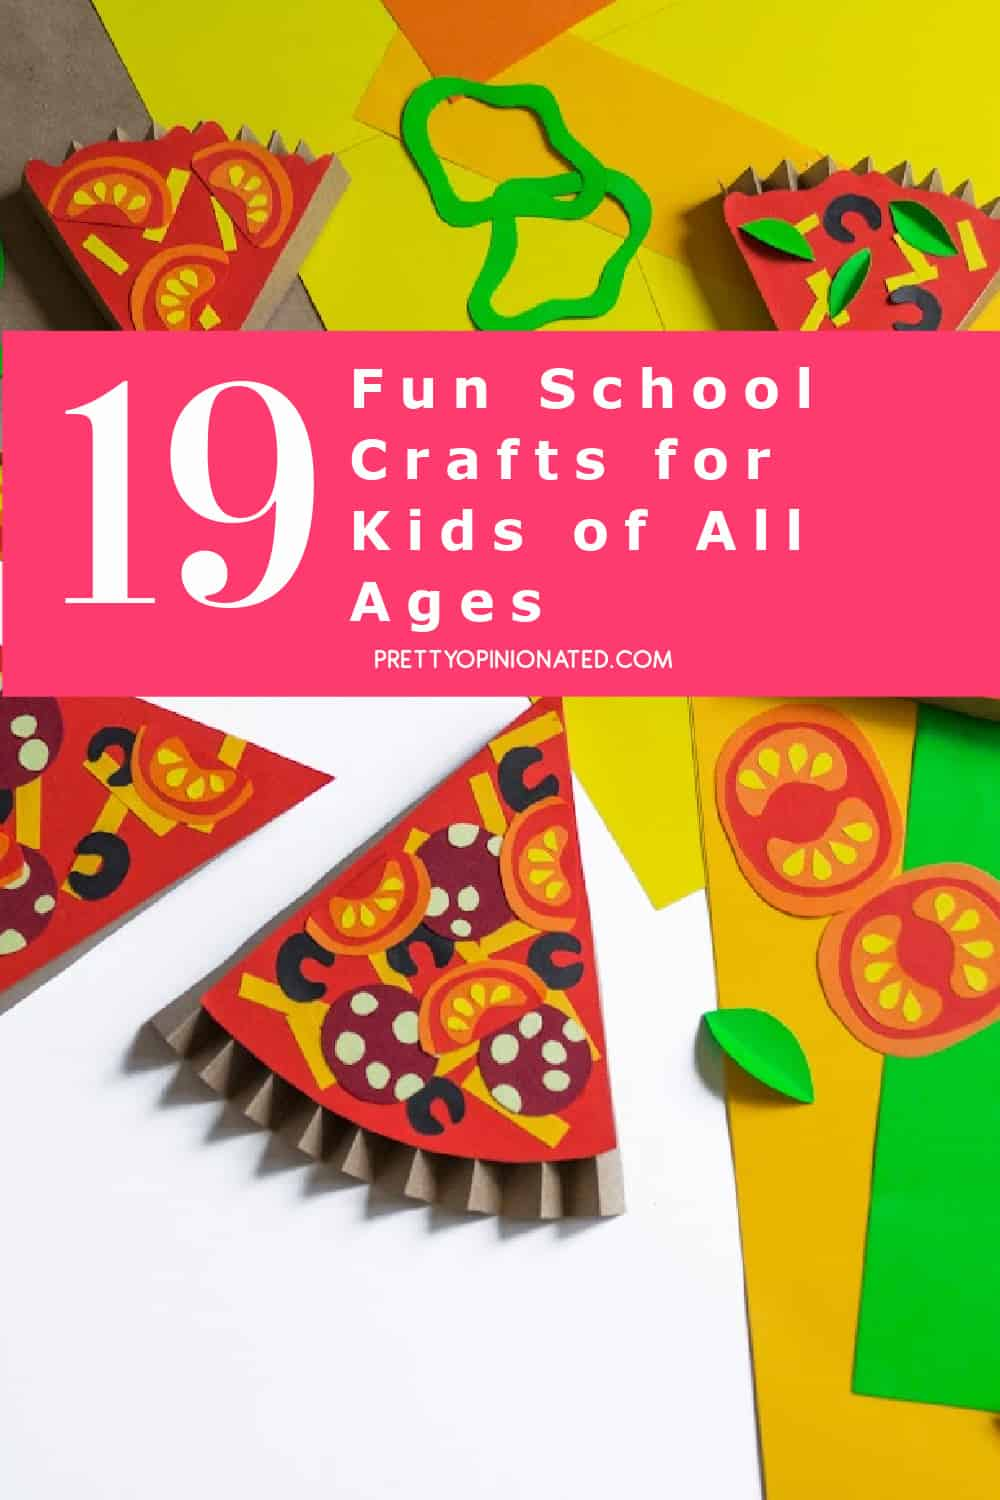 Reclaim that back-to-school feeling of excitement with these fun crafts! You can even save a few to do on the 100th day of school!